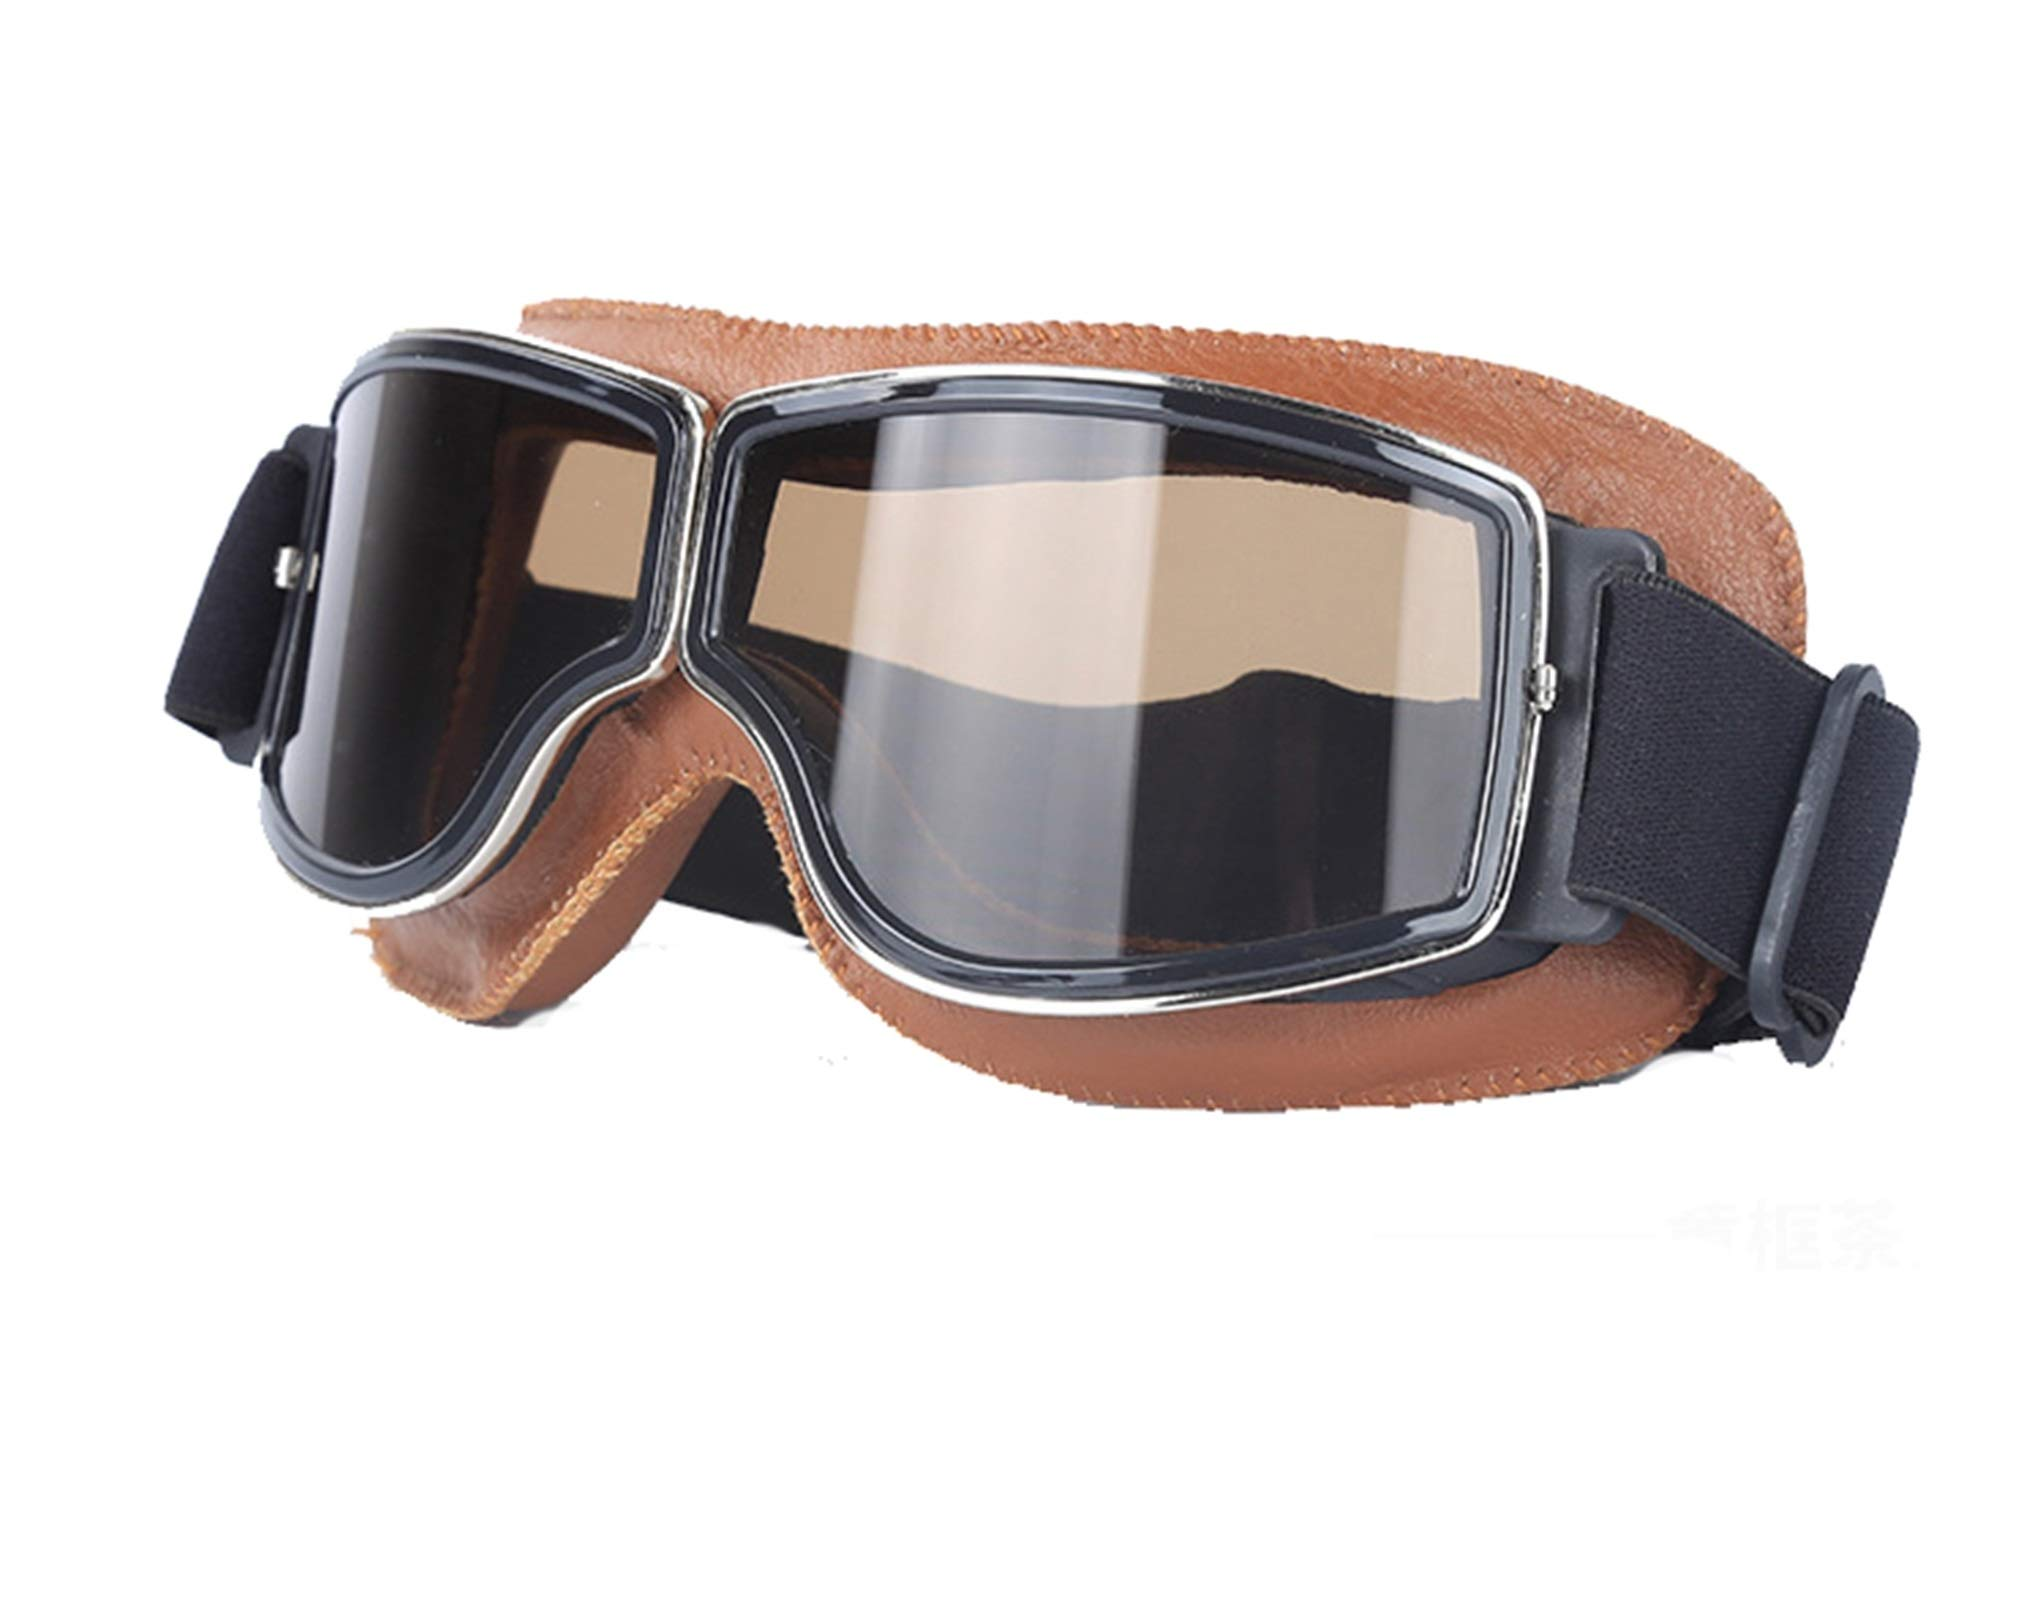 Adisaer Cycling Sunglasses Locomotive Retro Helmet mask Goggles Off-Road Cycling Goggles Brown Black for Adults